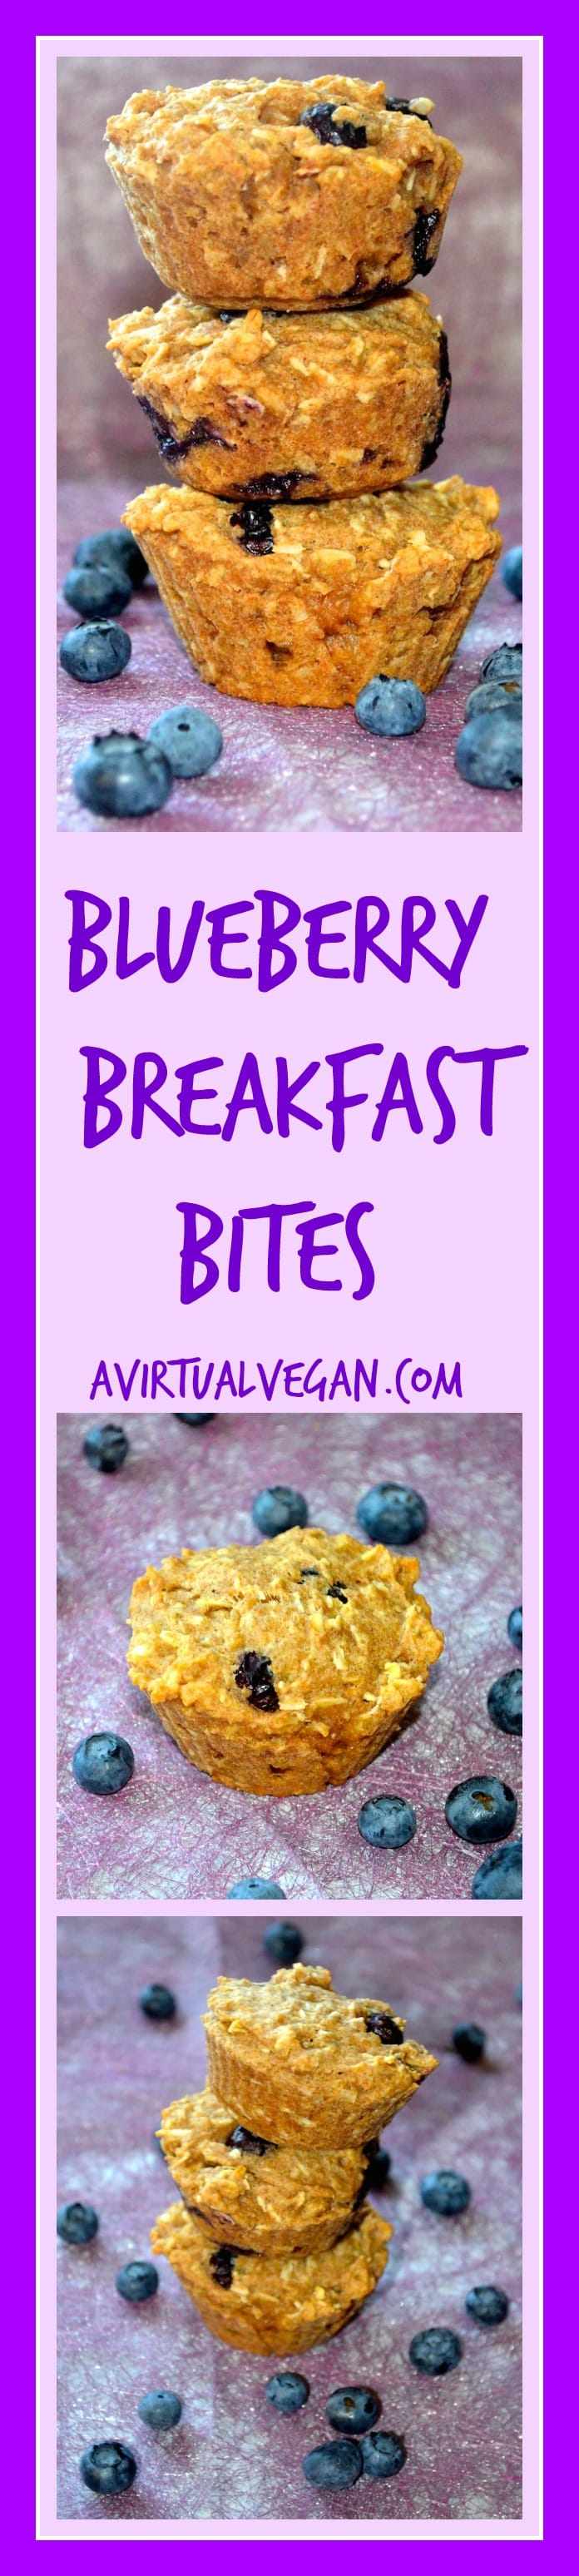 Blueberry Breakfast Bites. Healthy, little muffins crammed full of oozy blueberries. A great way to start the day!